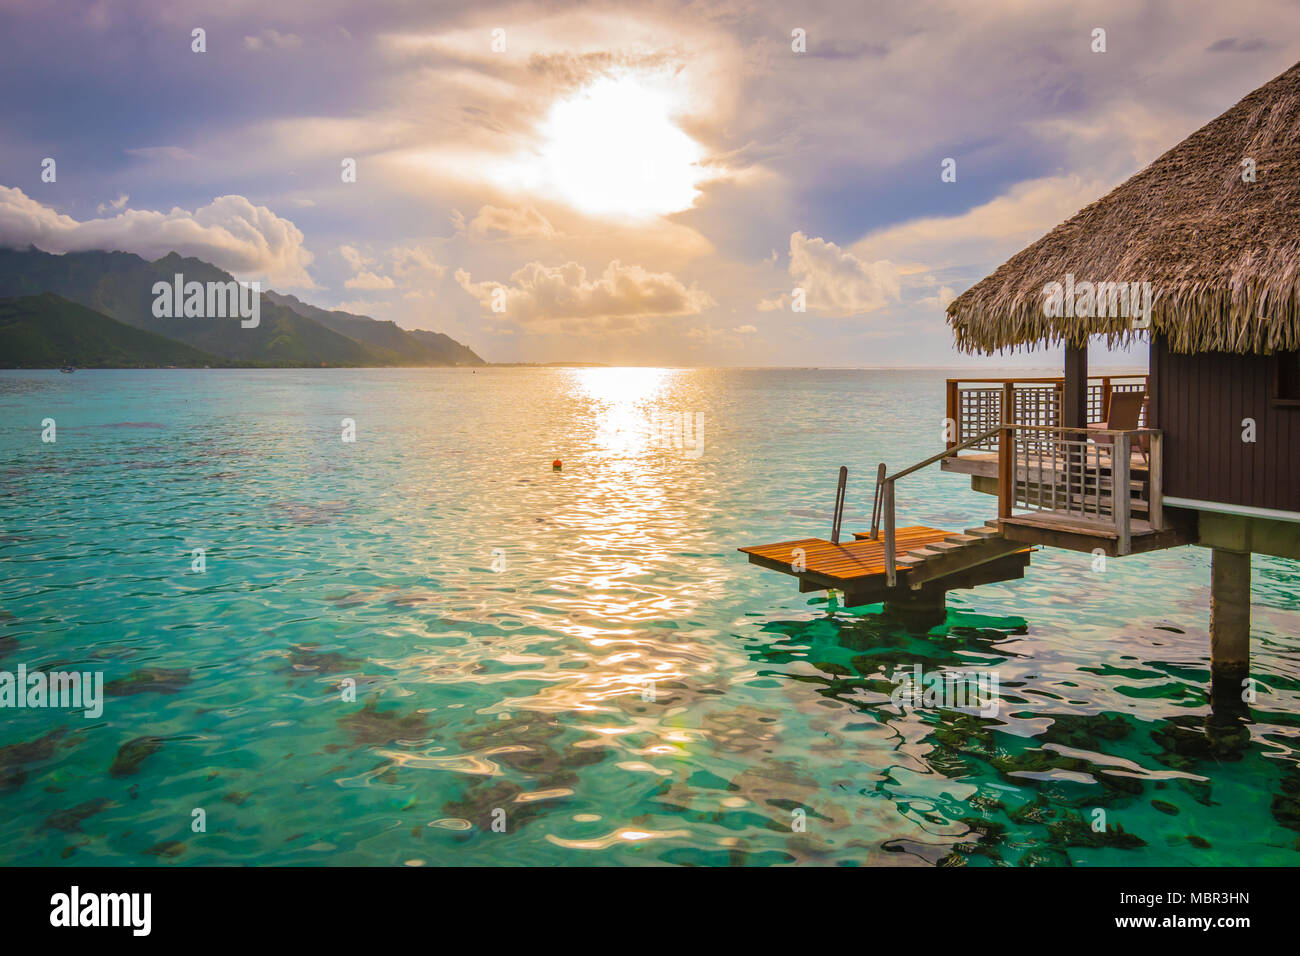 Evening with sunset in Moorea. Overwater bungalow on the side with breathtaking lagoon, French Polynesia - Stock Image